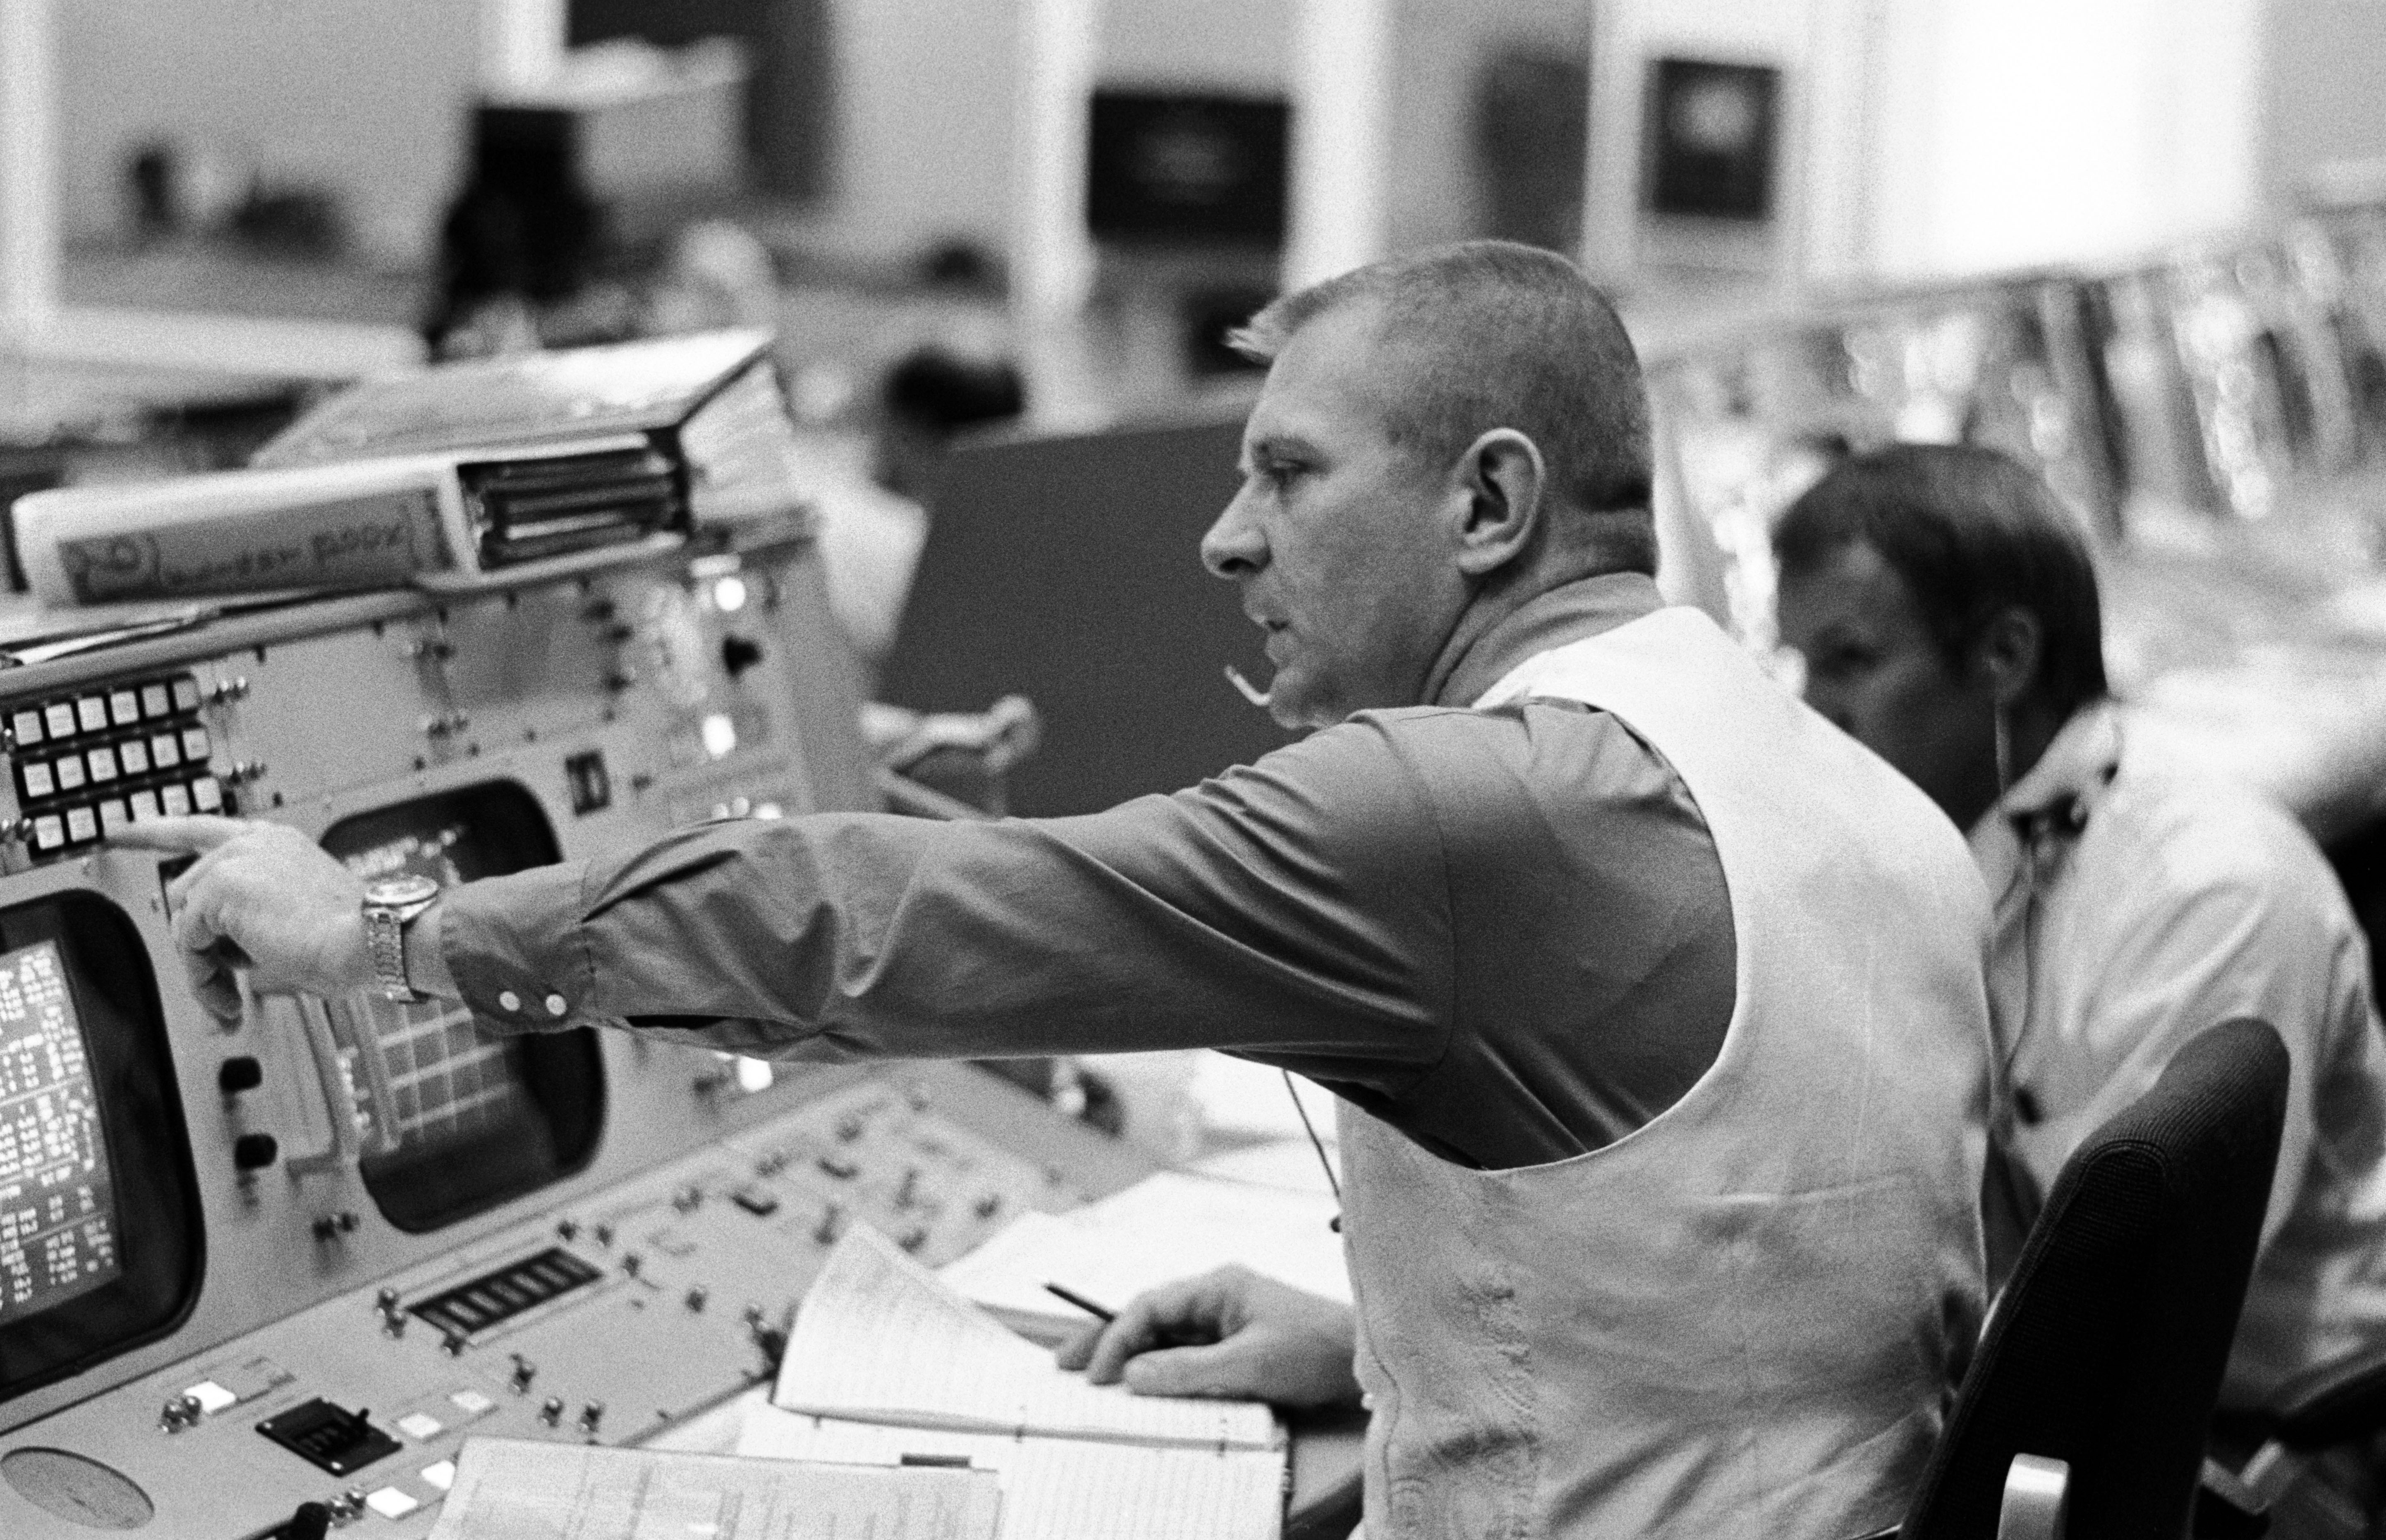 Apollo Flight Director, Gene Kranz, was honored at the 2018 To the Moon and Beyond luncheon.